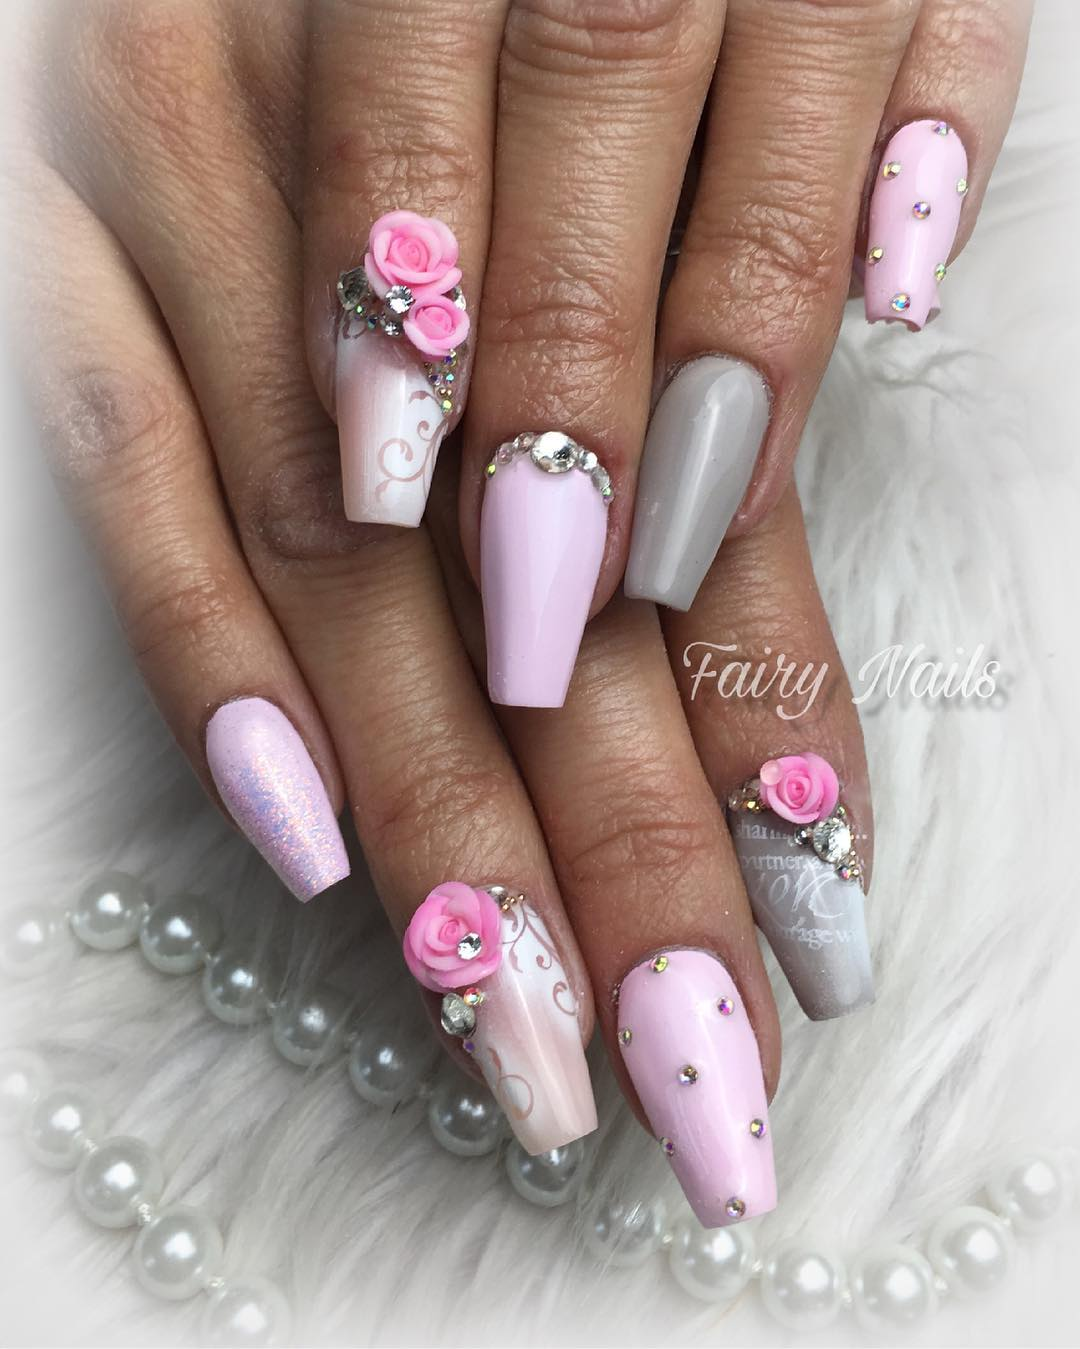 3 3D Flower Nail Art Designs